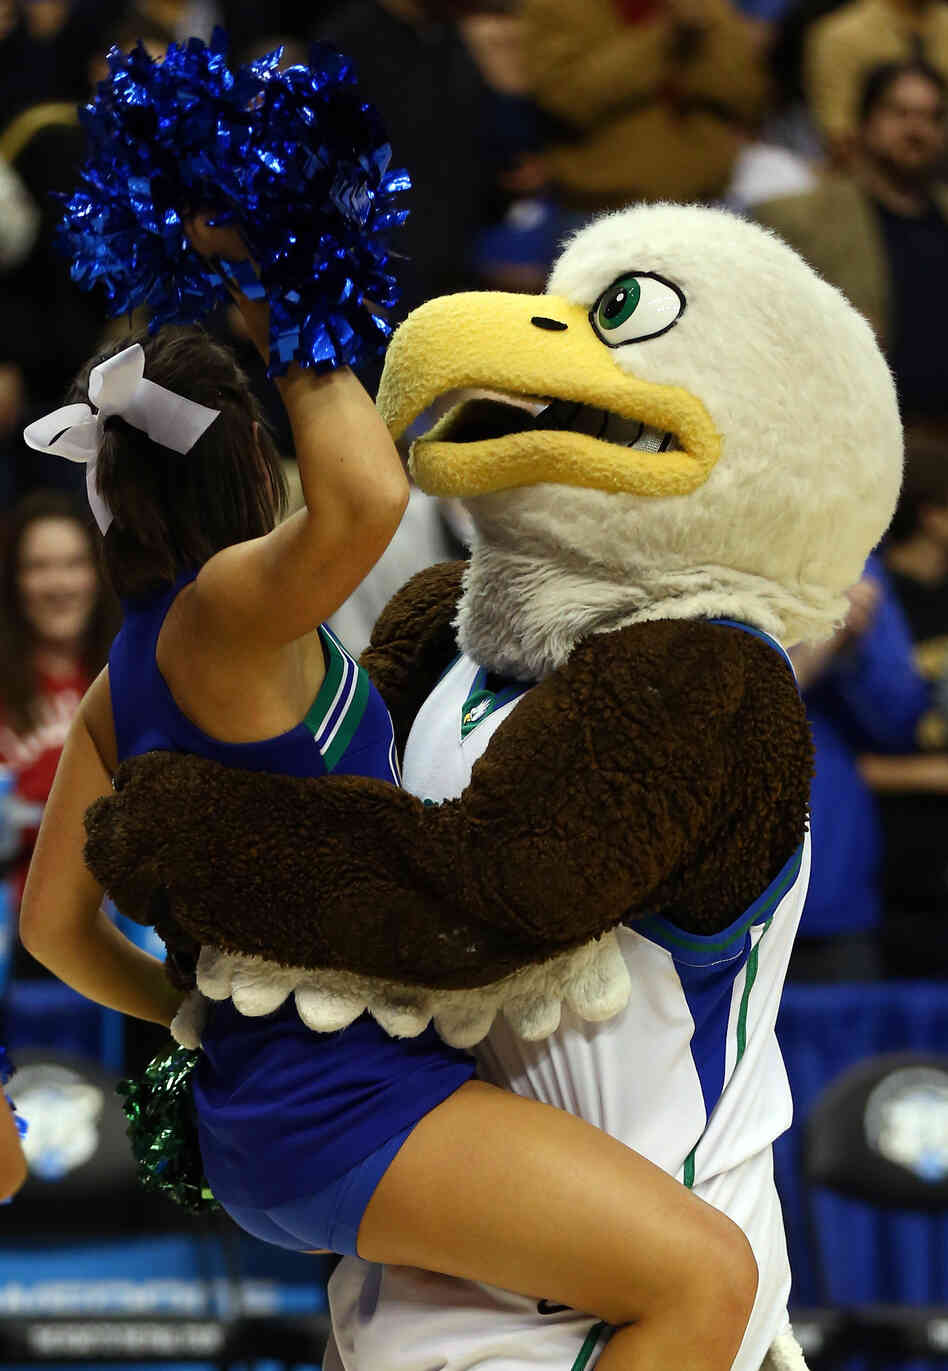 The Florida Gulf Coast Eagles mascot picks up an Eagles cheerleader after the team's 81-71 victory a